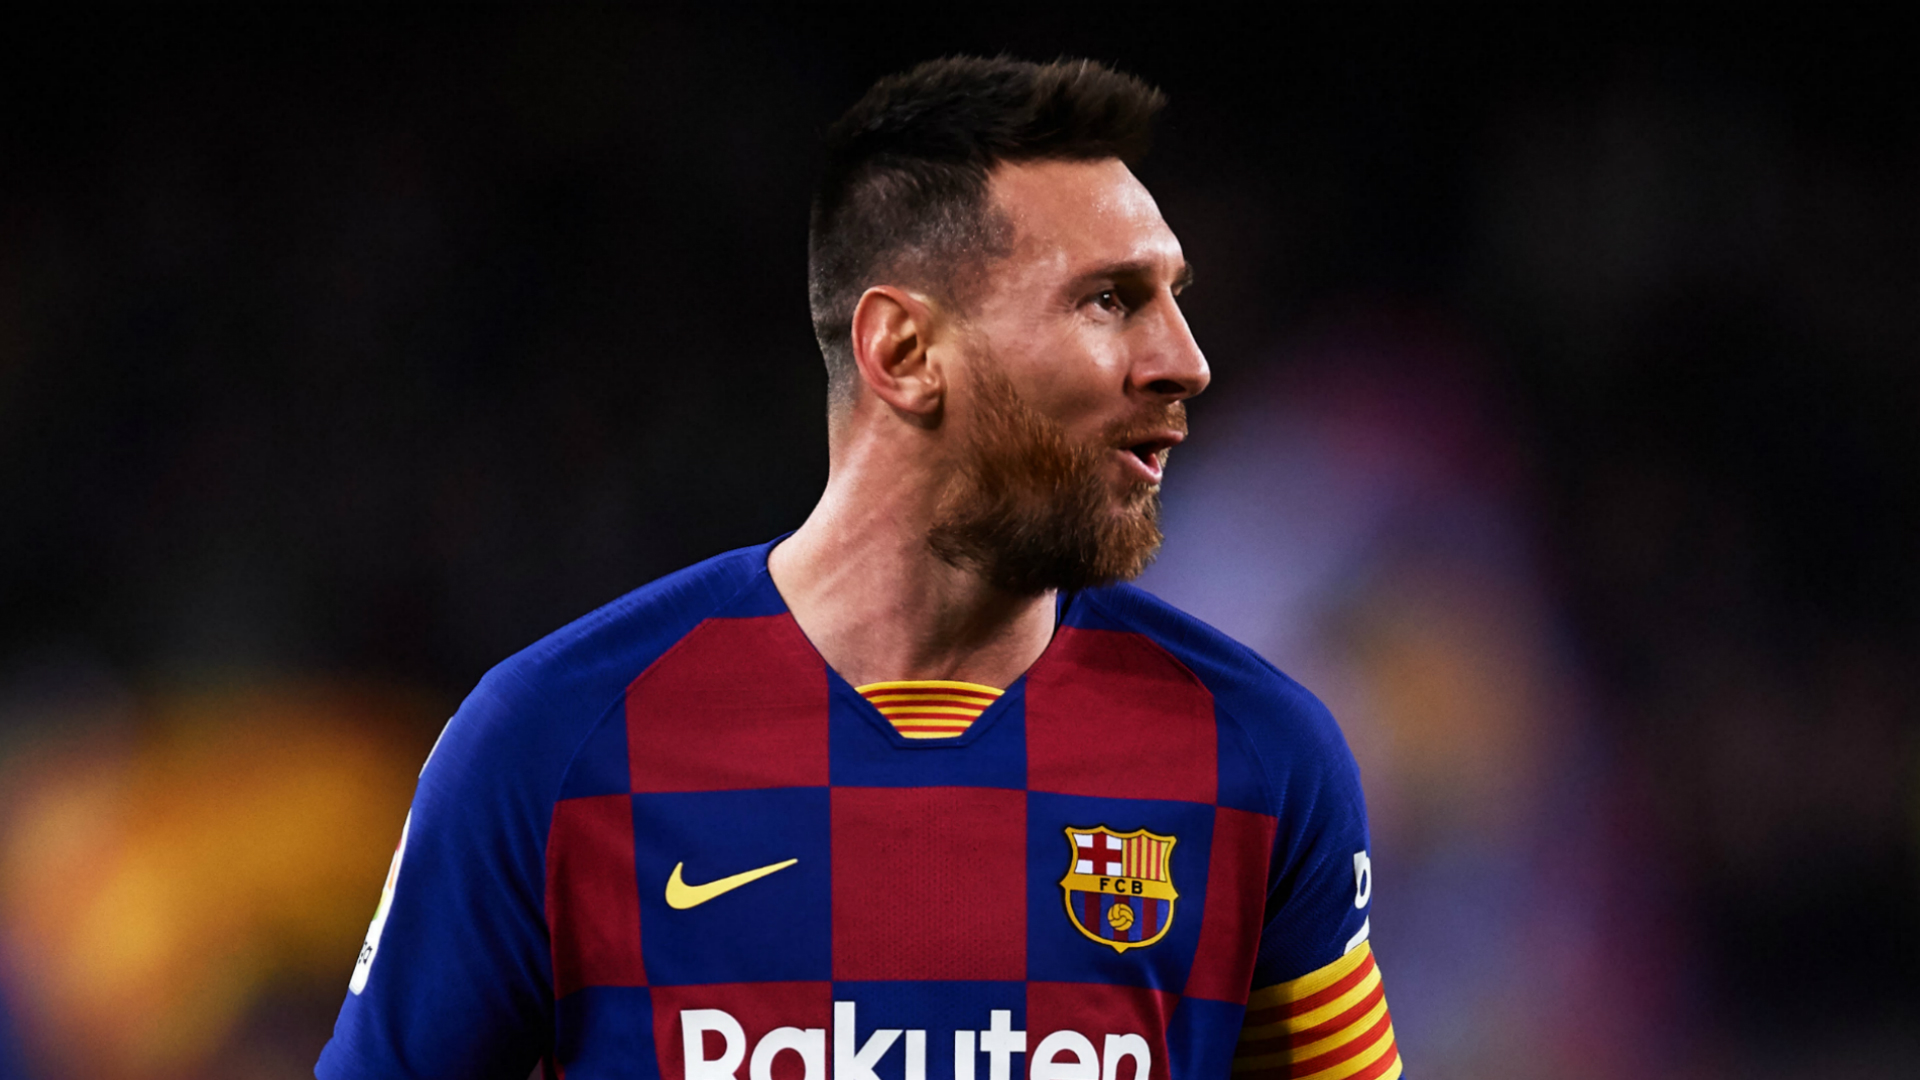 It's impossible not to depend on Messi, says Valverde